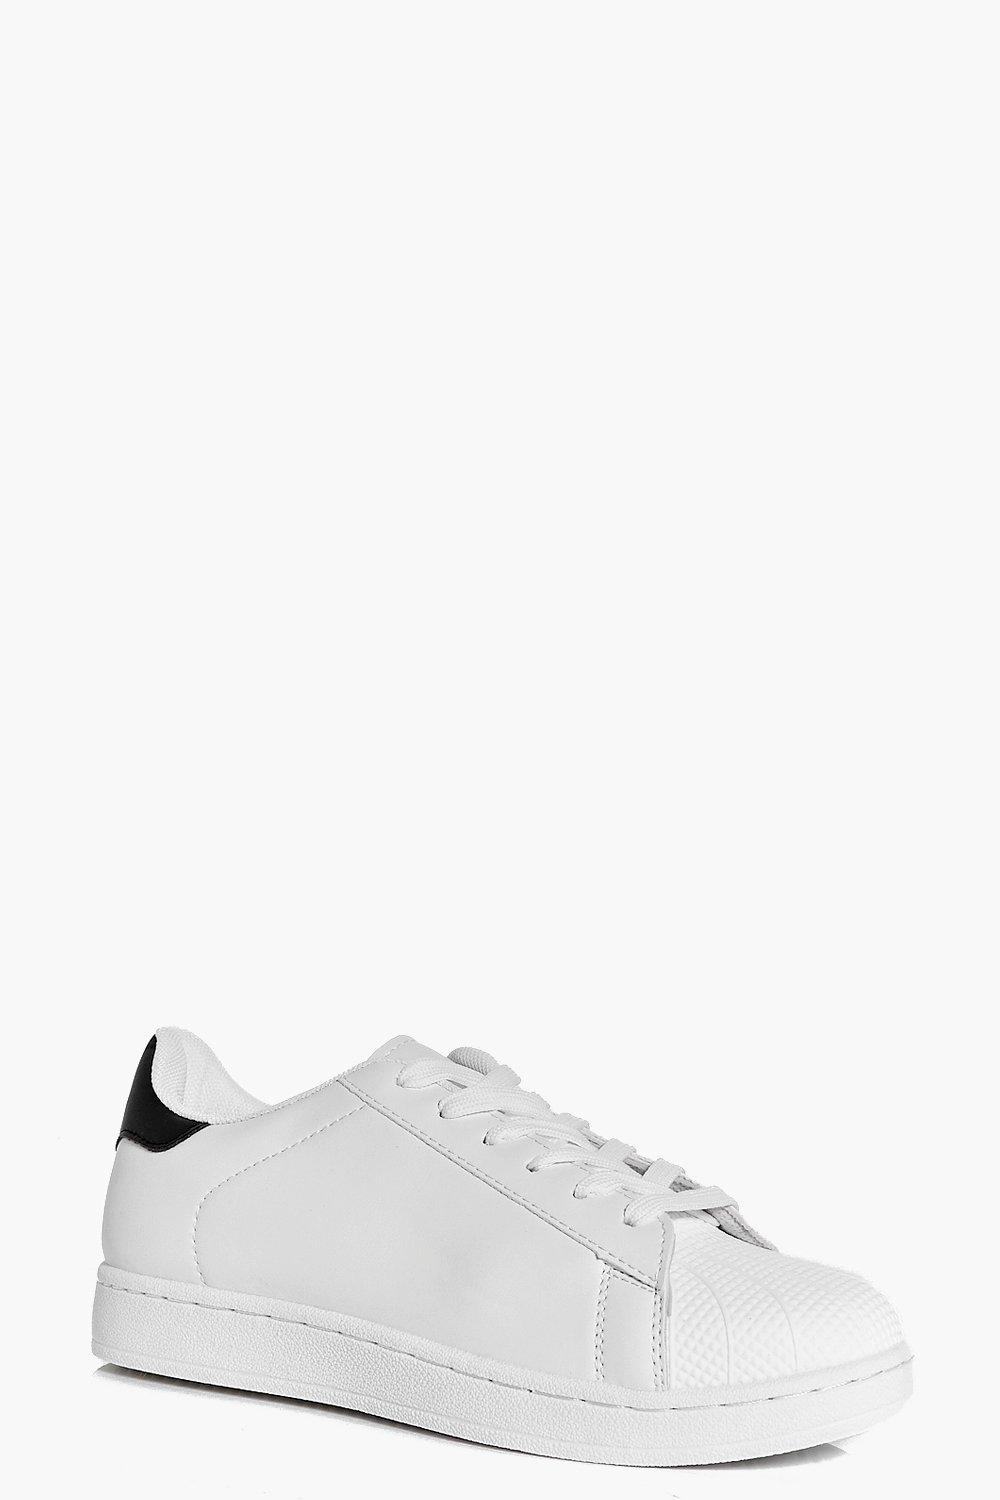 Tilly Contrast Back Lace Up Trainer